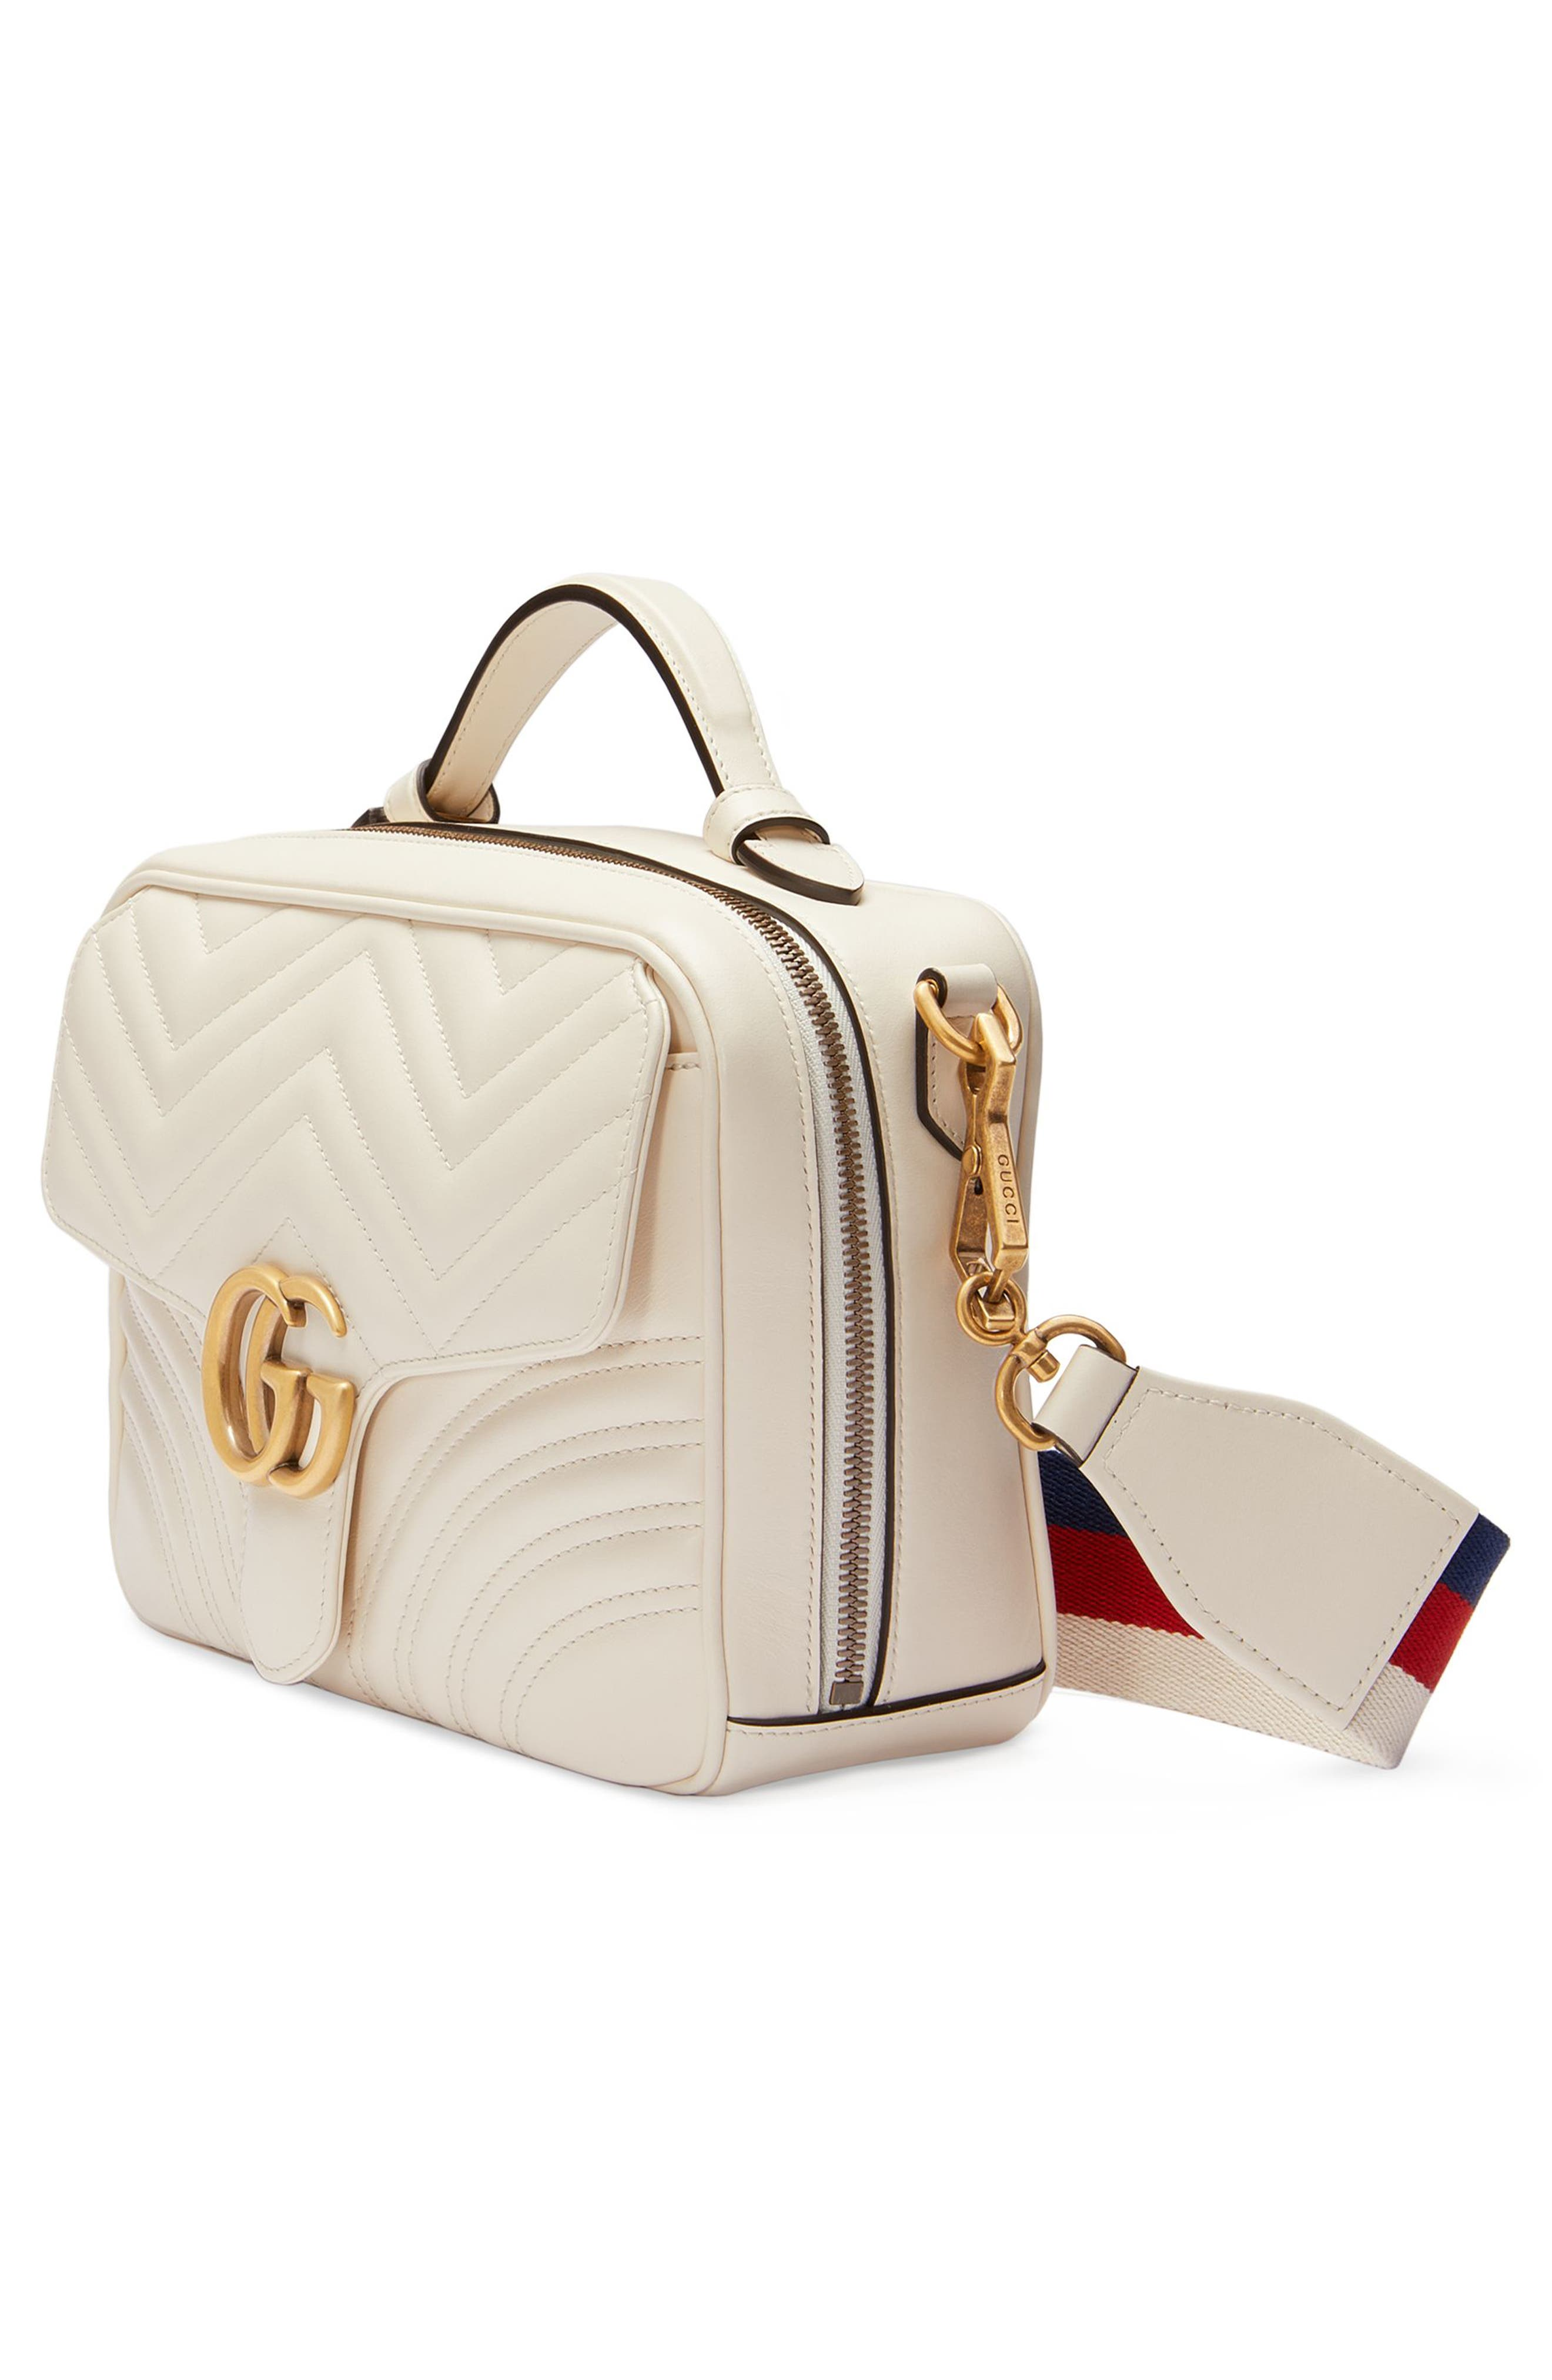 Small GG Marmont 2.0 Matelassé Leather Camera Bag with Webbed Strap,                             Alternate thumbnail 4, color,                             MYSTIC WHITE/ HIBISCUS RED